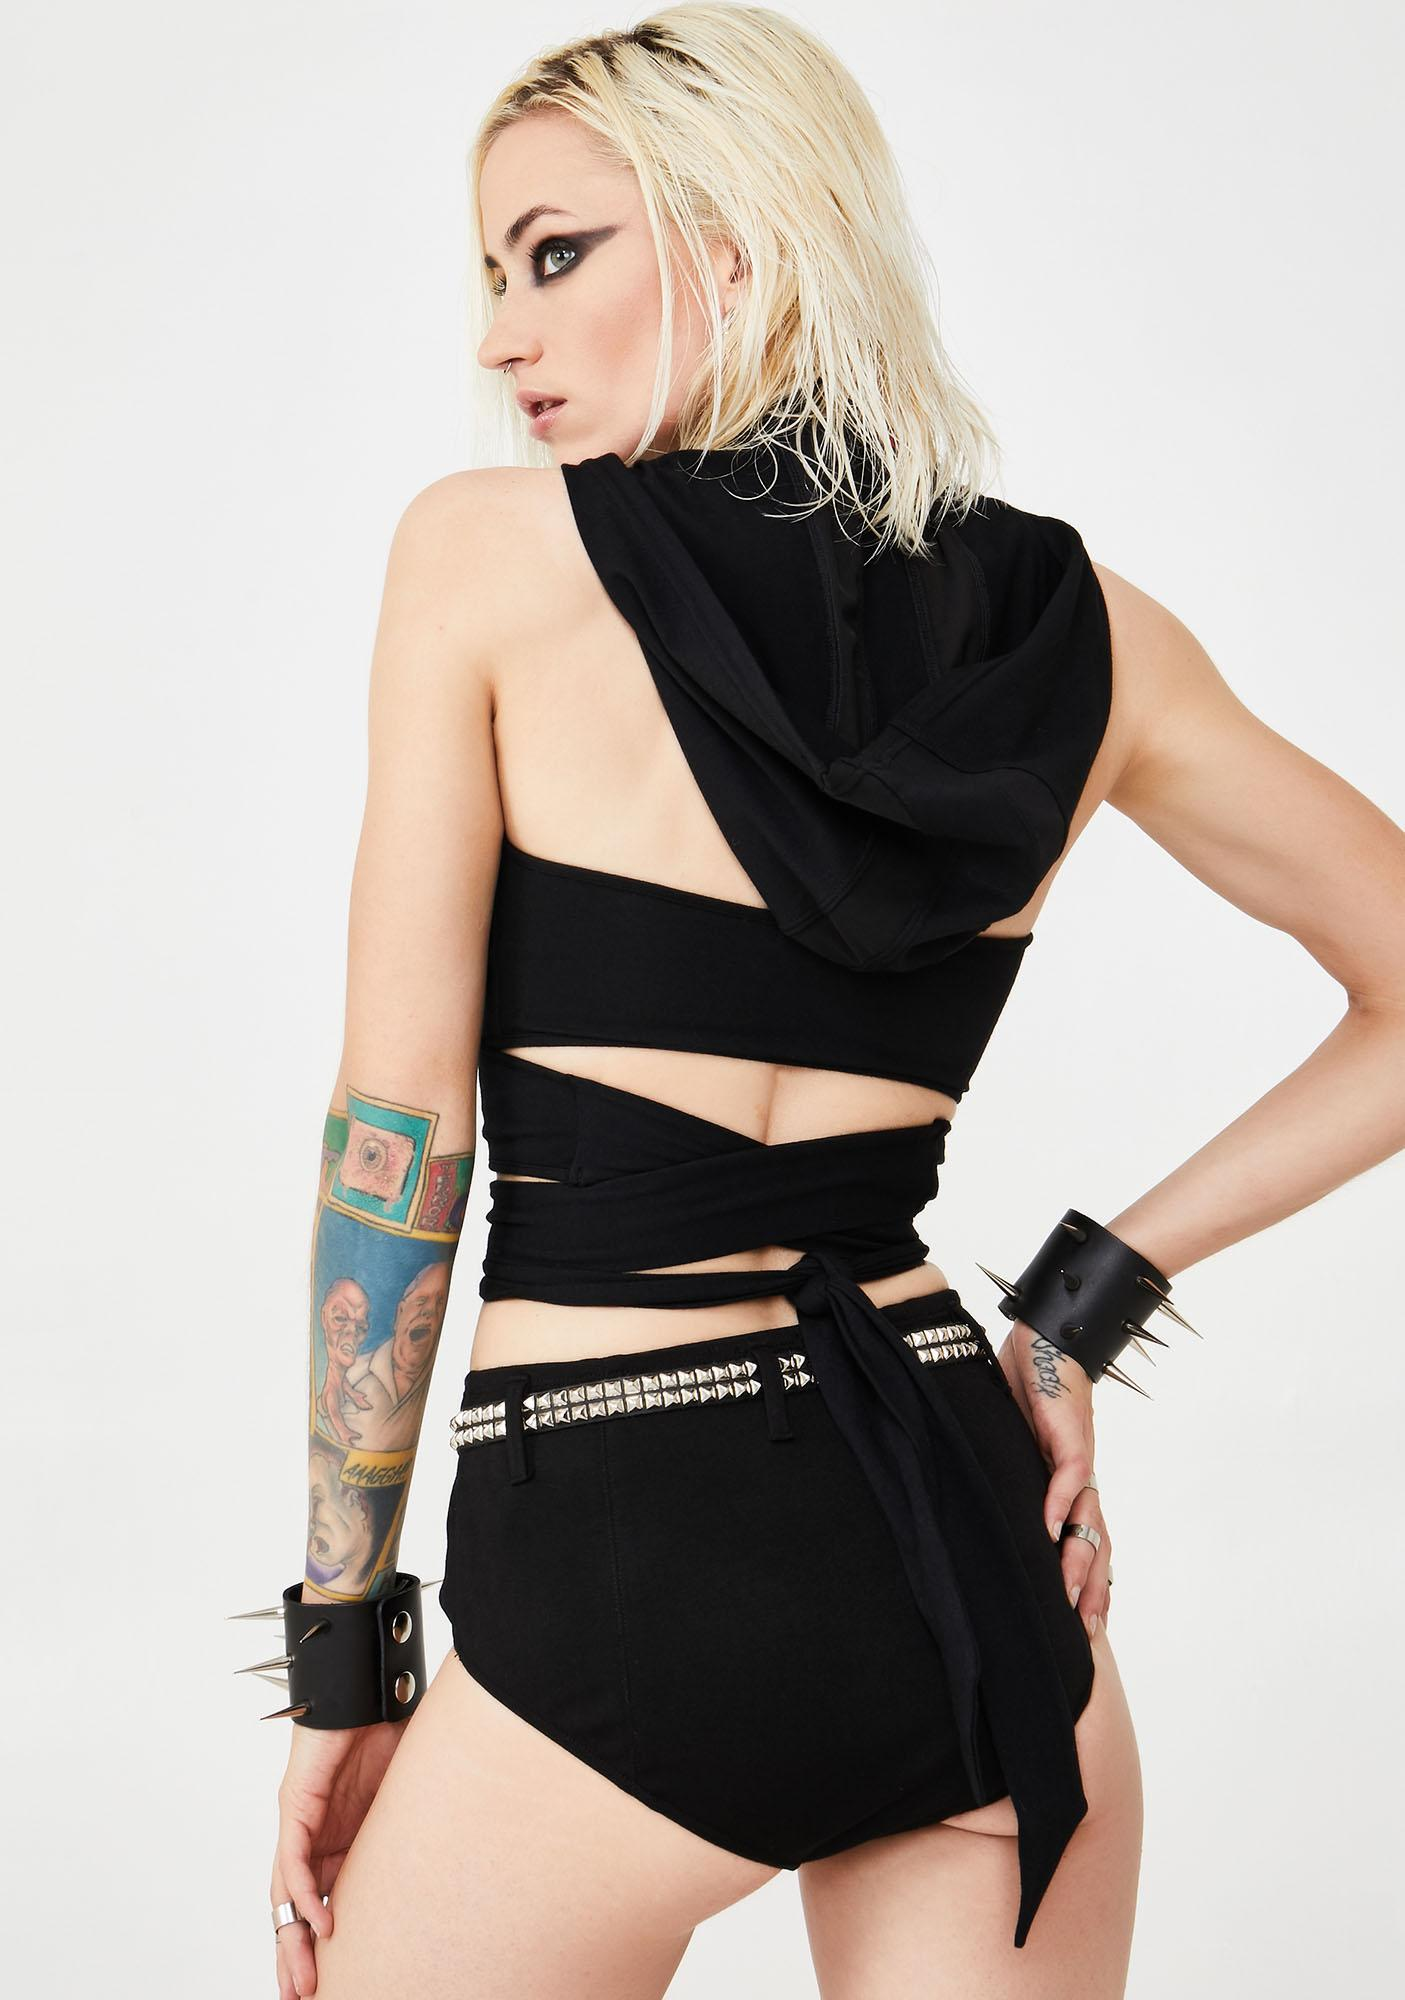 Club Exx Nocturnal Nympho Wrap Top